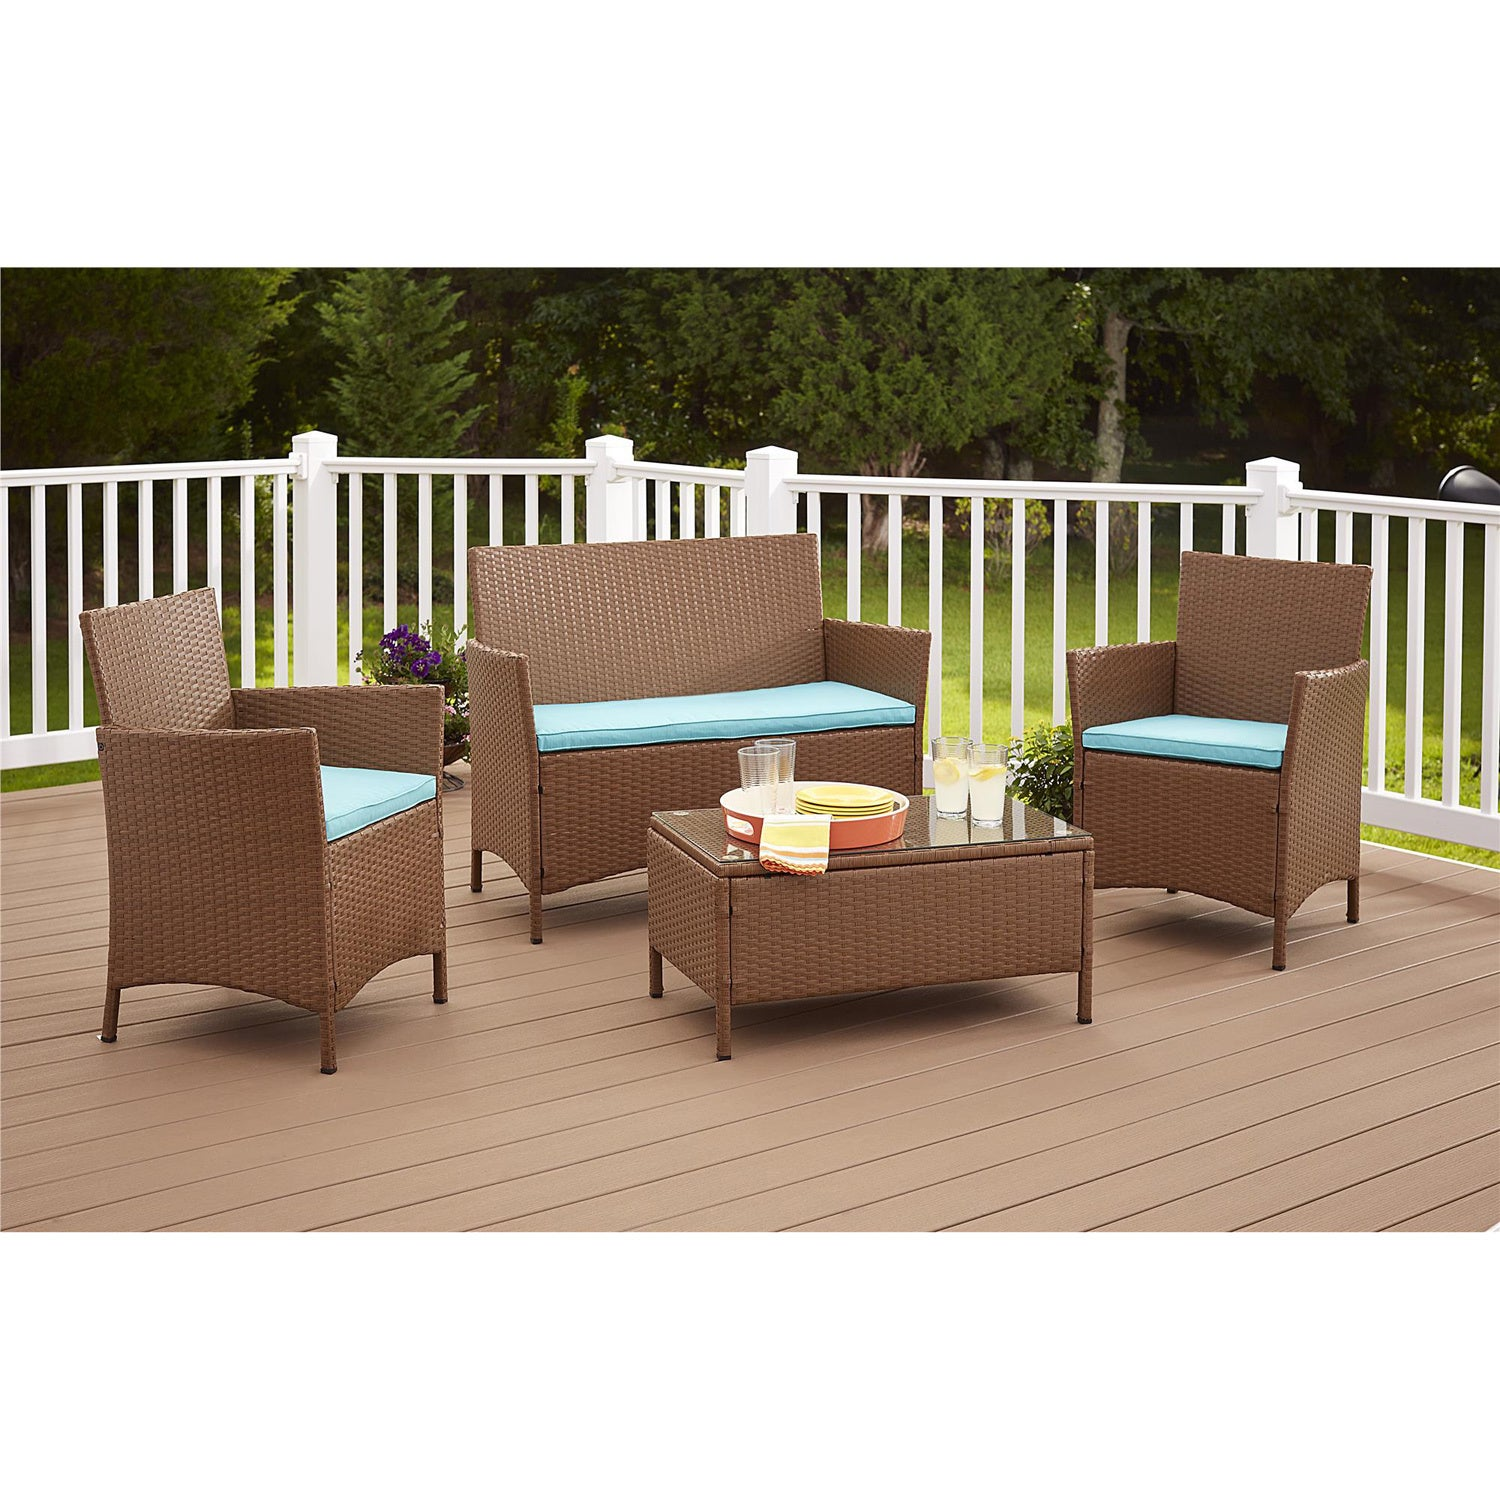 wicker patio set table chairs sofa love seat conversation dining deck